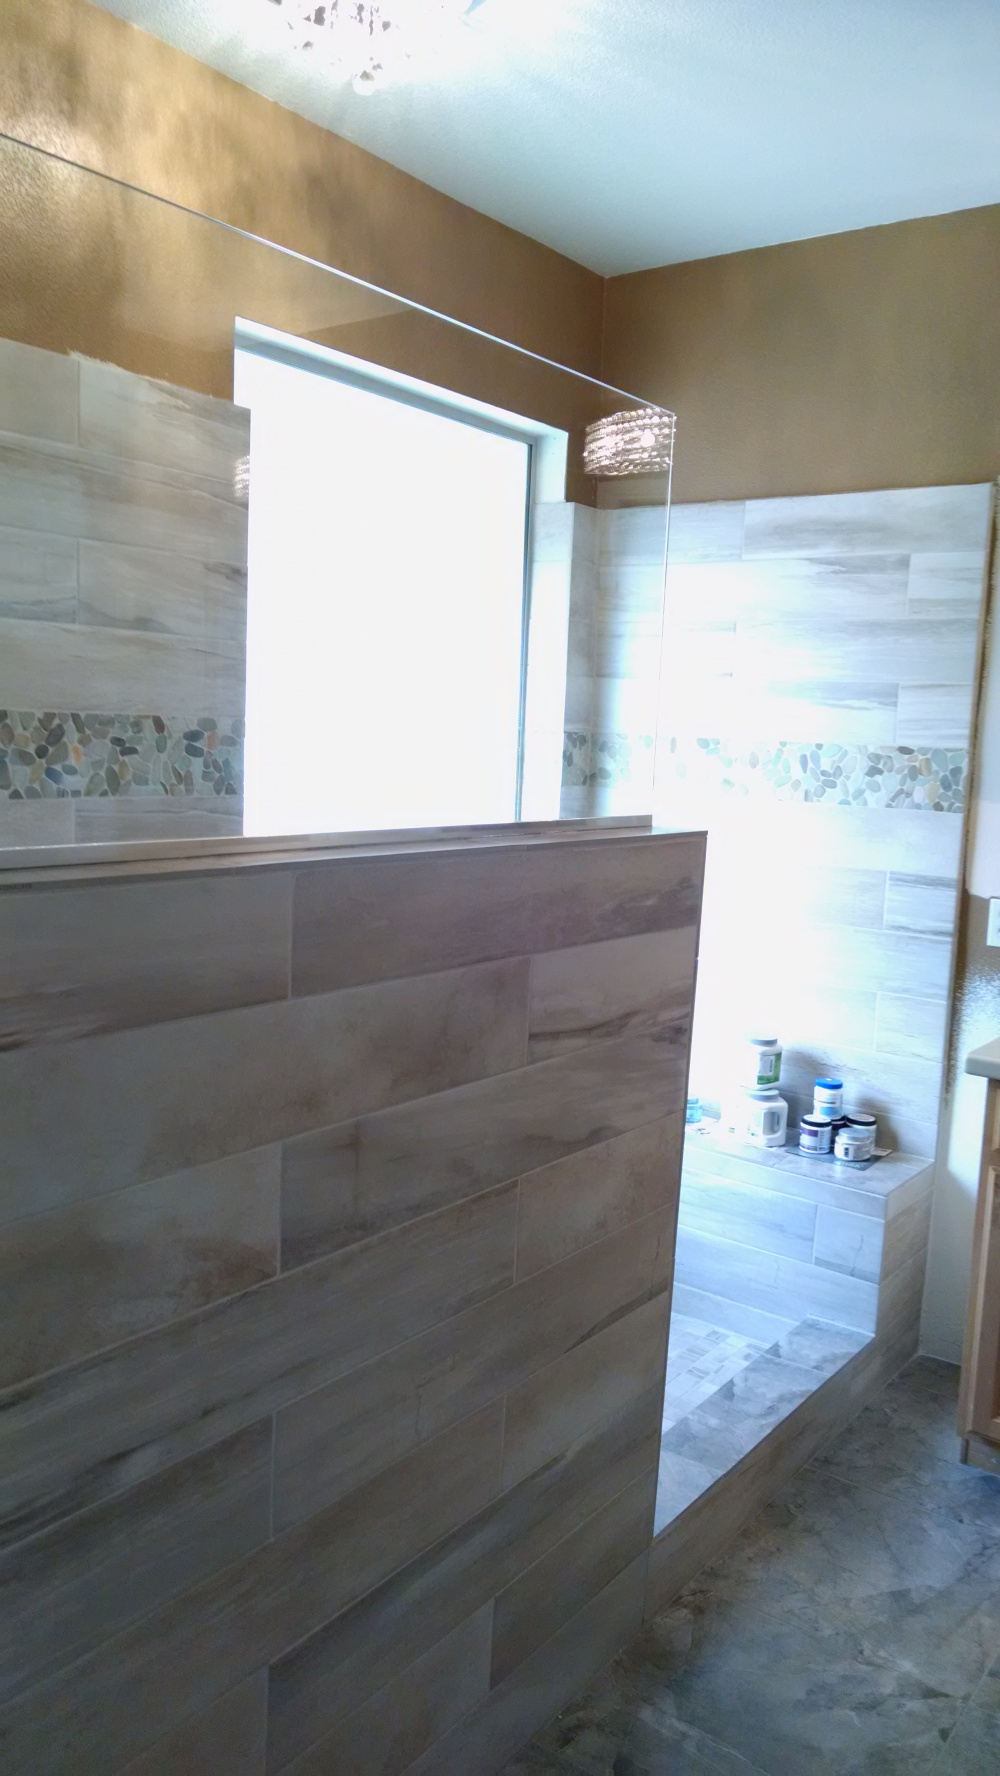 Phoenix Bathroom Remodel Enchanting Home Remodeling Phoenix  Champion Remodeling Llc. Review